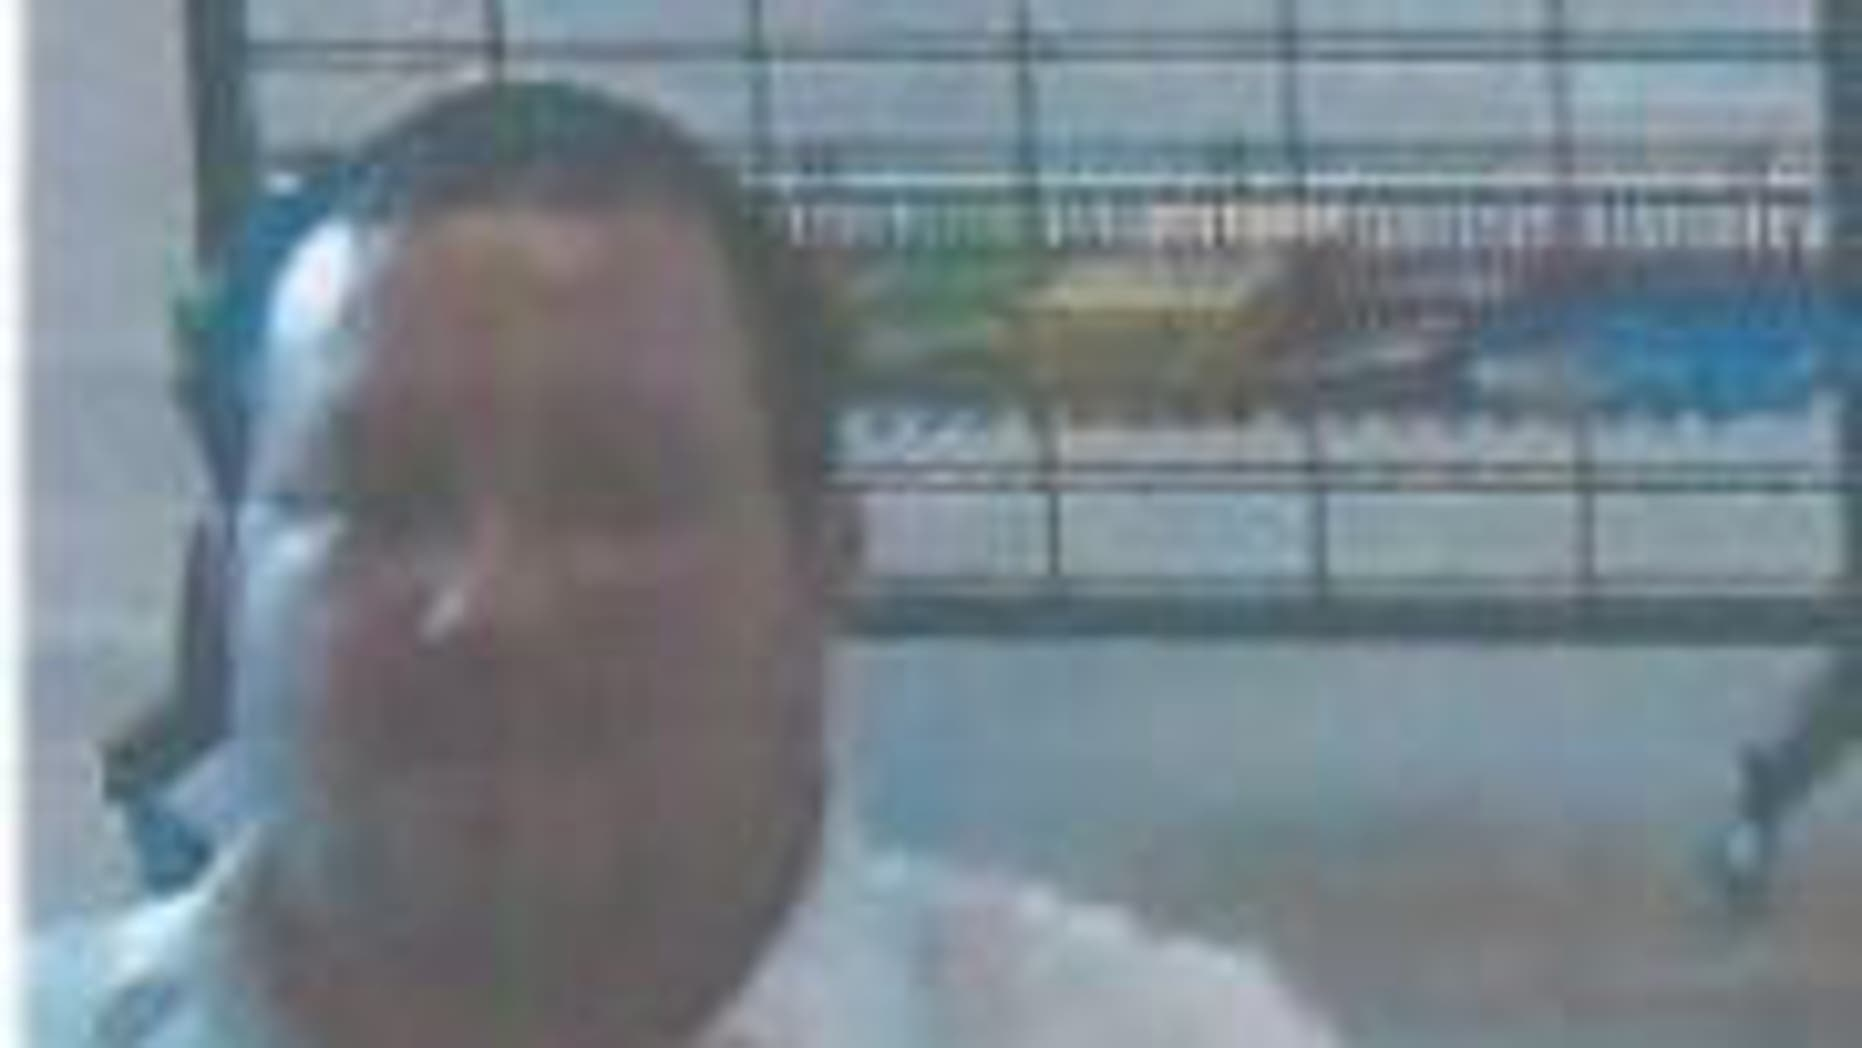 This unidentified man is accused of pleasuring himself at a movie theater in Howell, N.J.